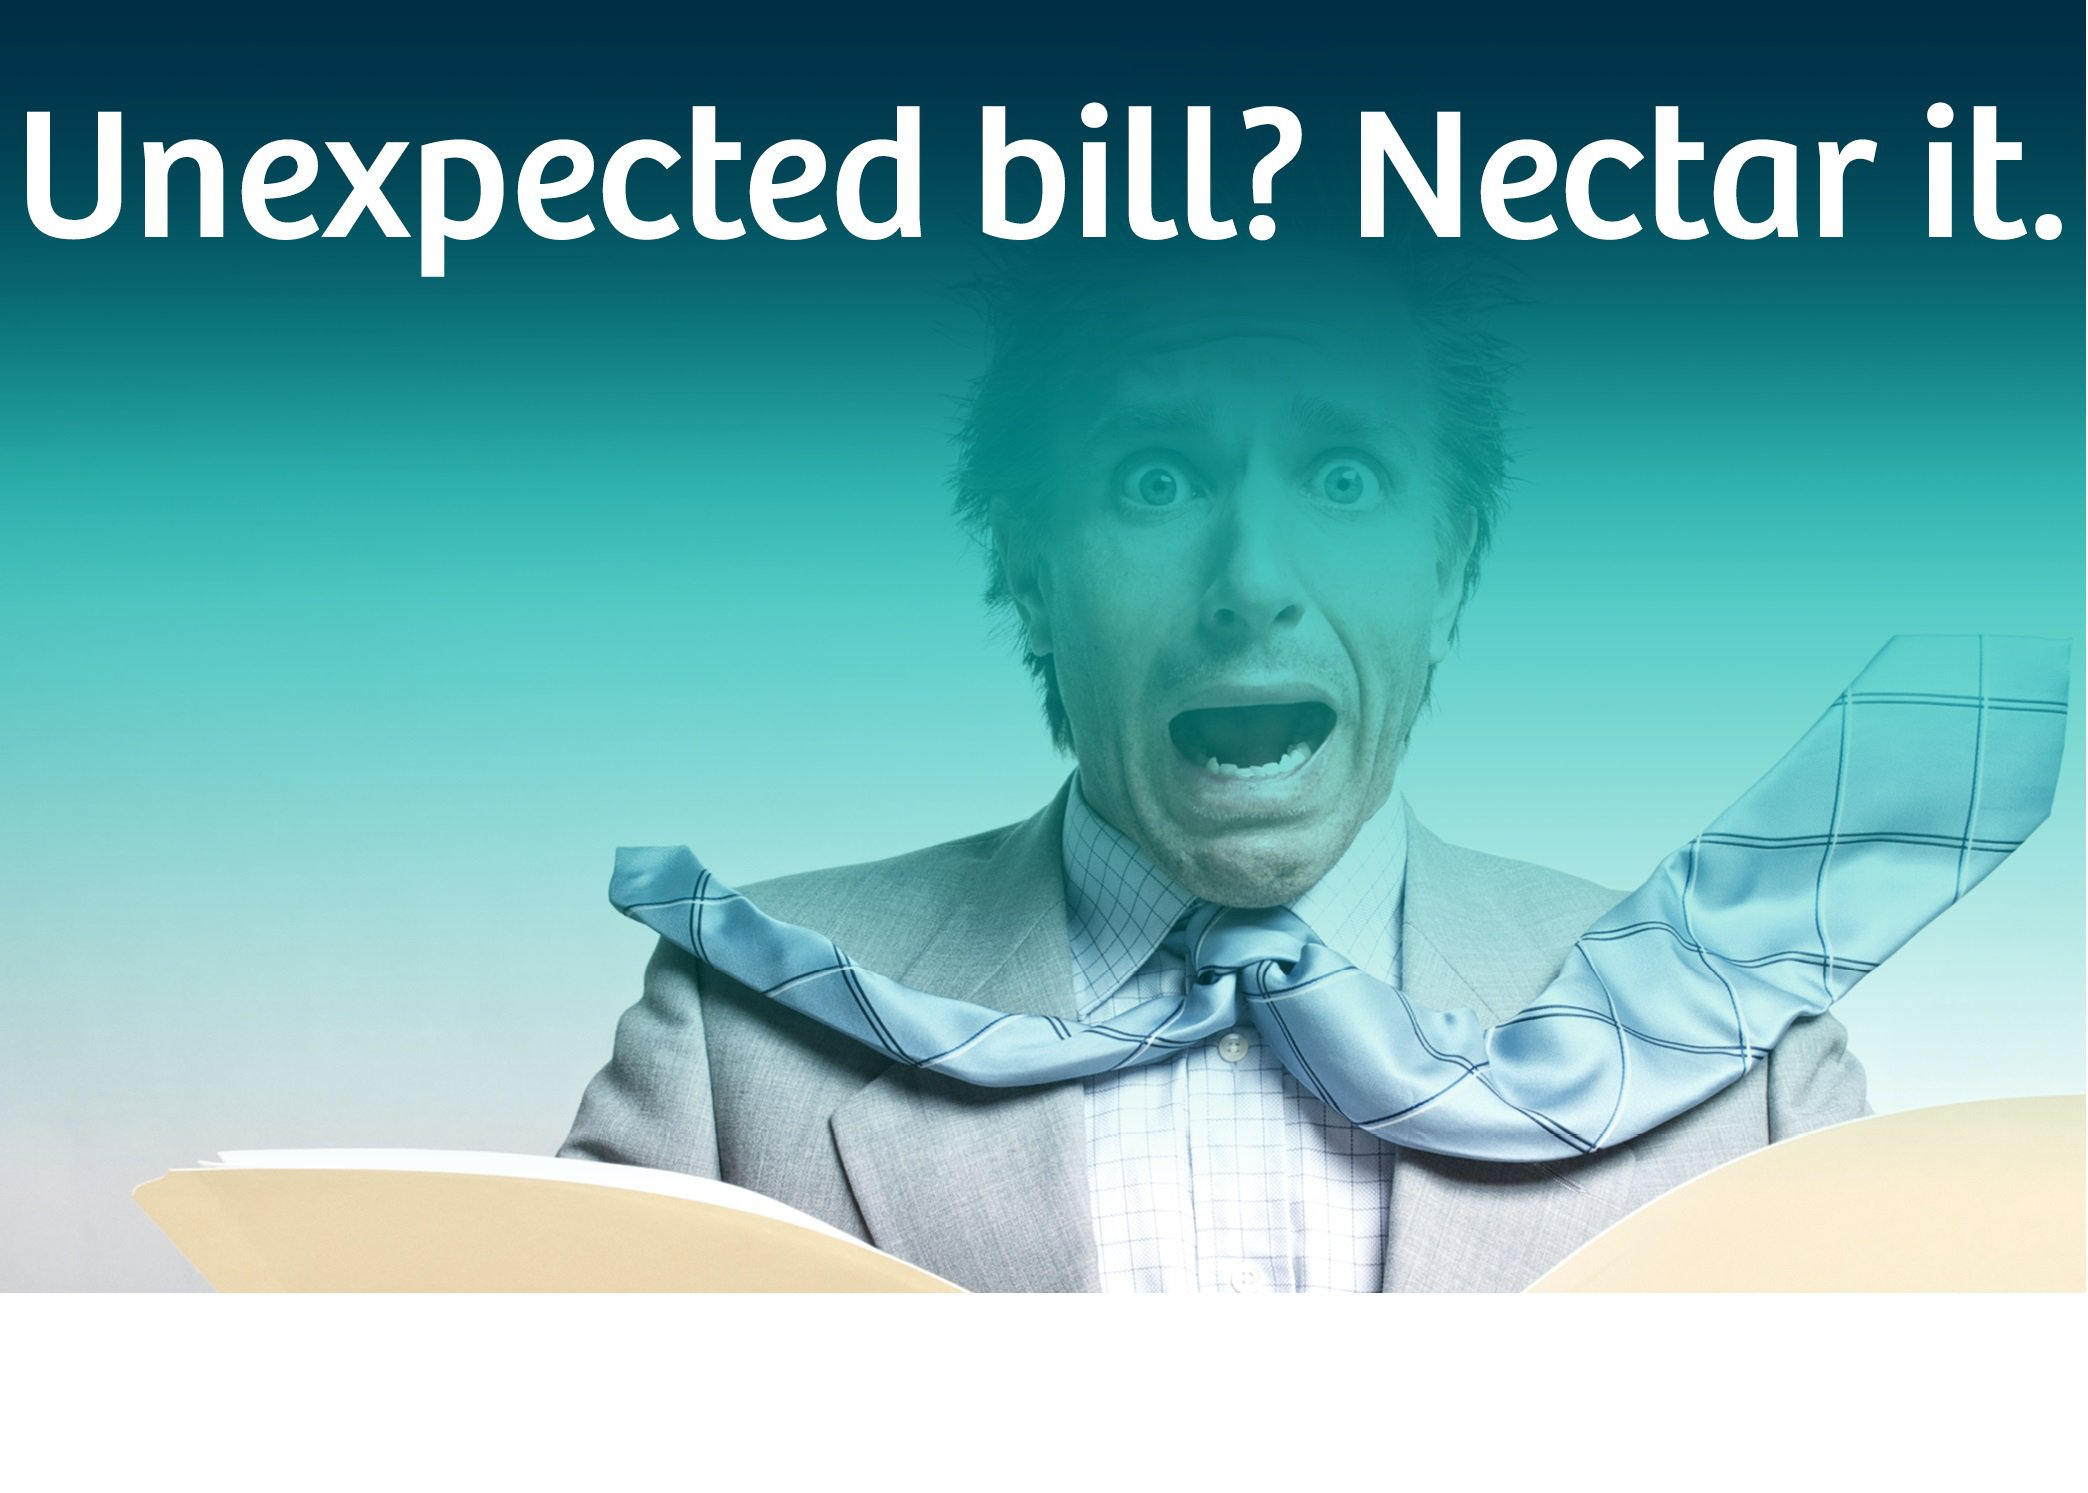 loan for unexpected bill